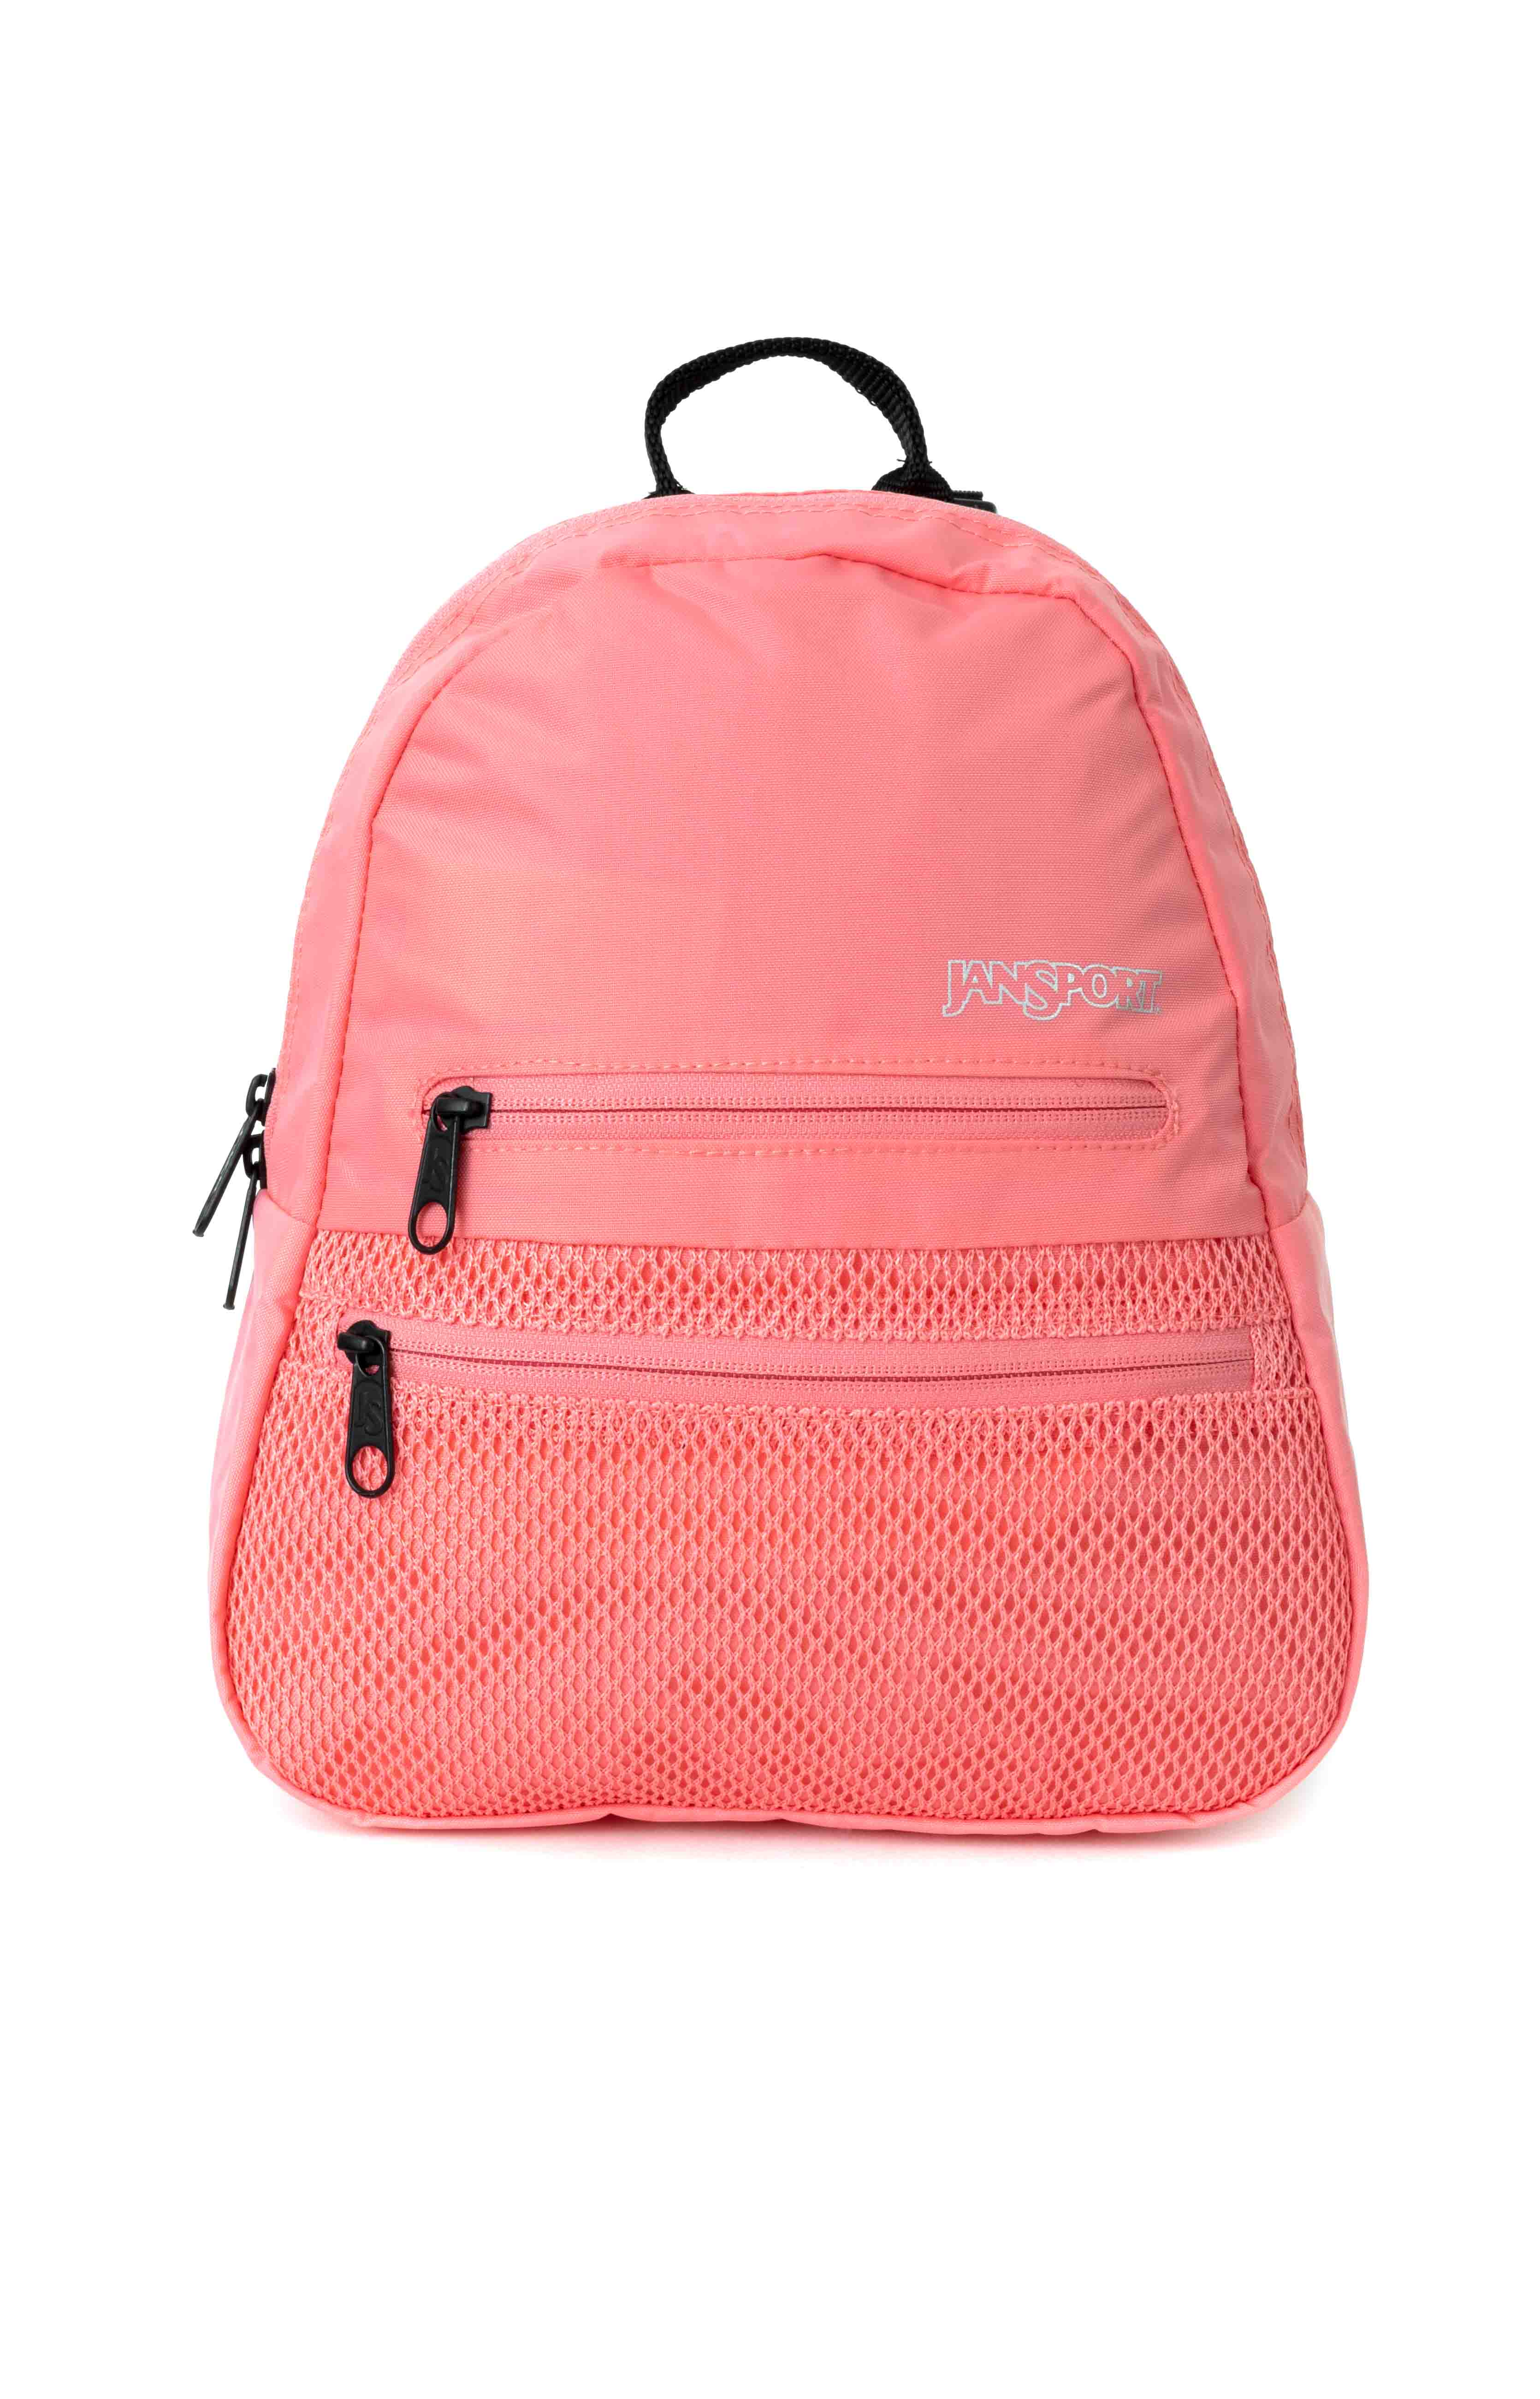 Half Pint TR Backpack - Strawberry Pink